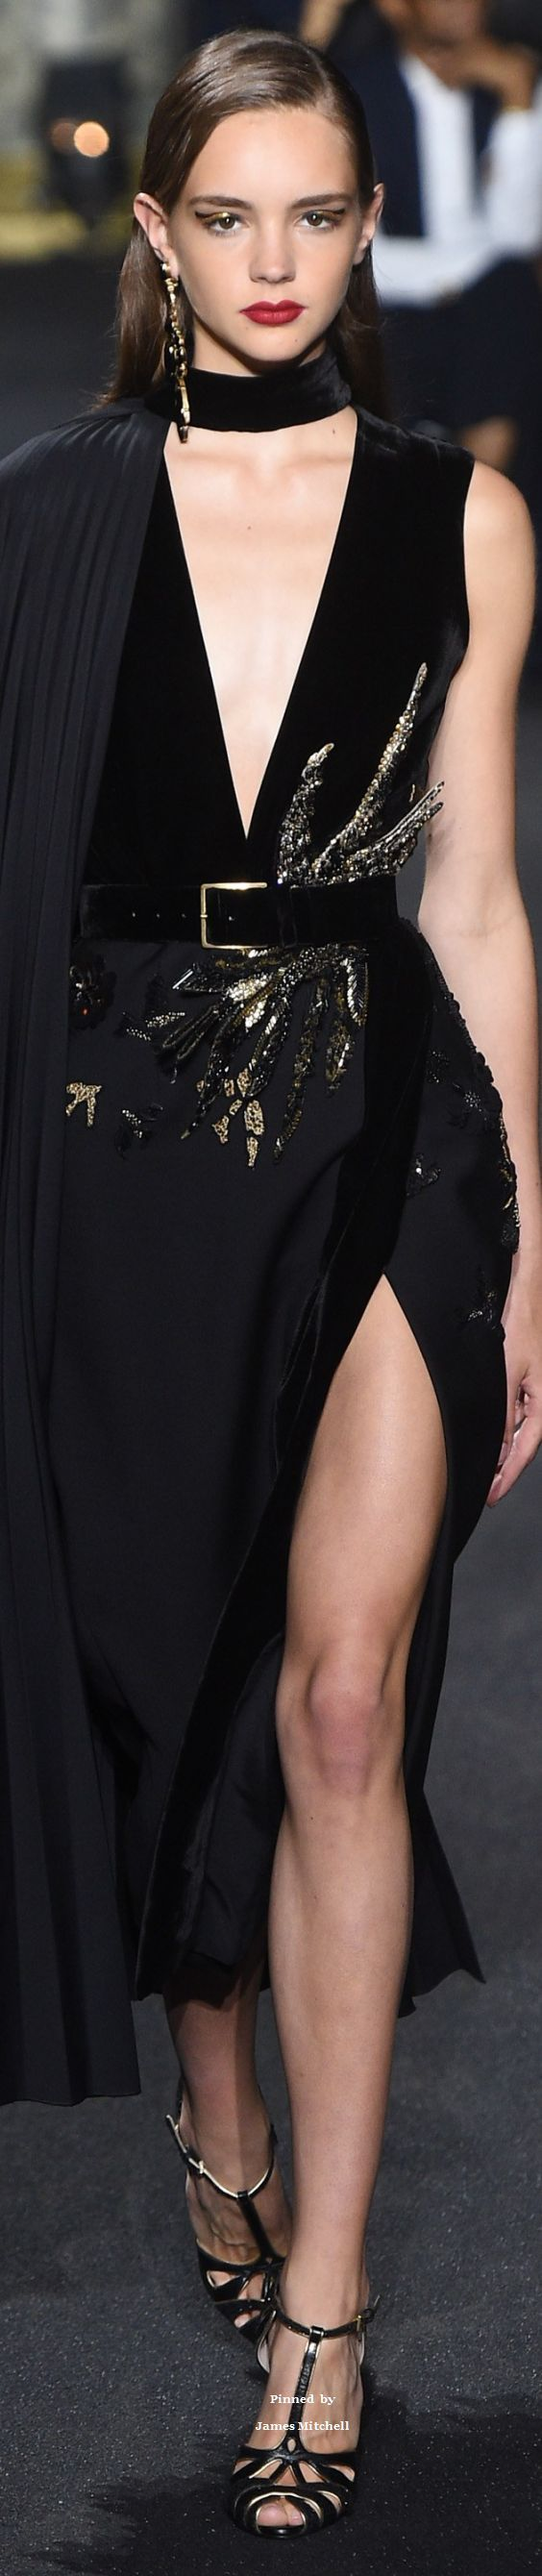 Elie Saab Fall 2016 Couture: